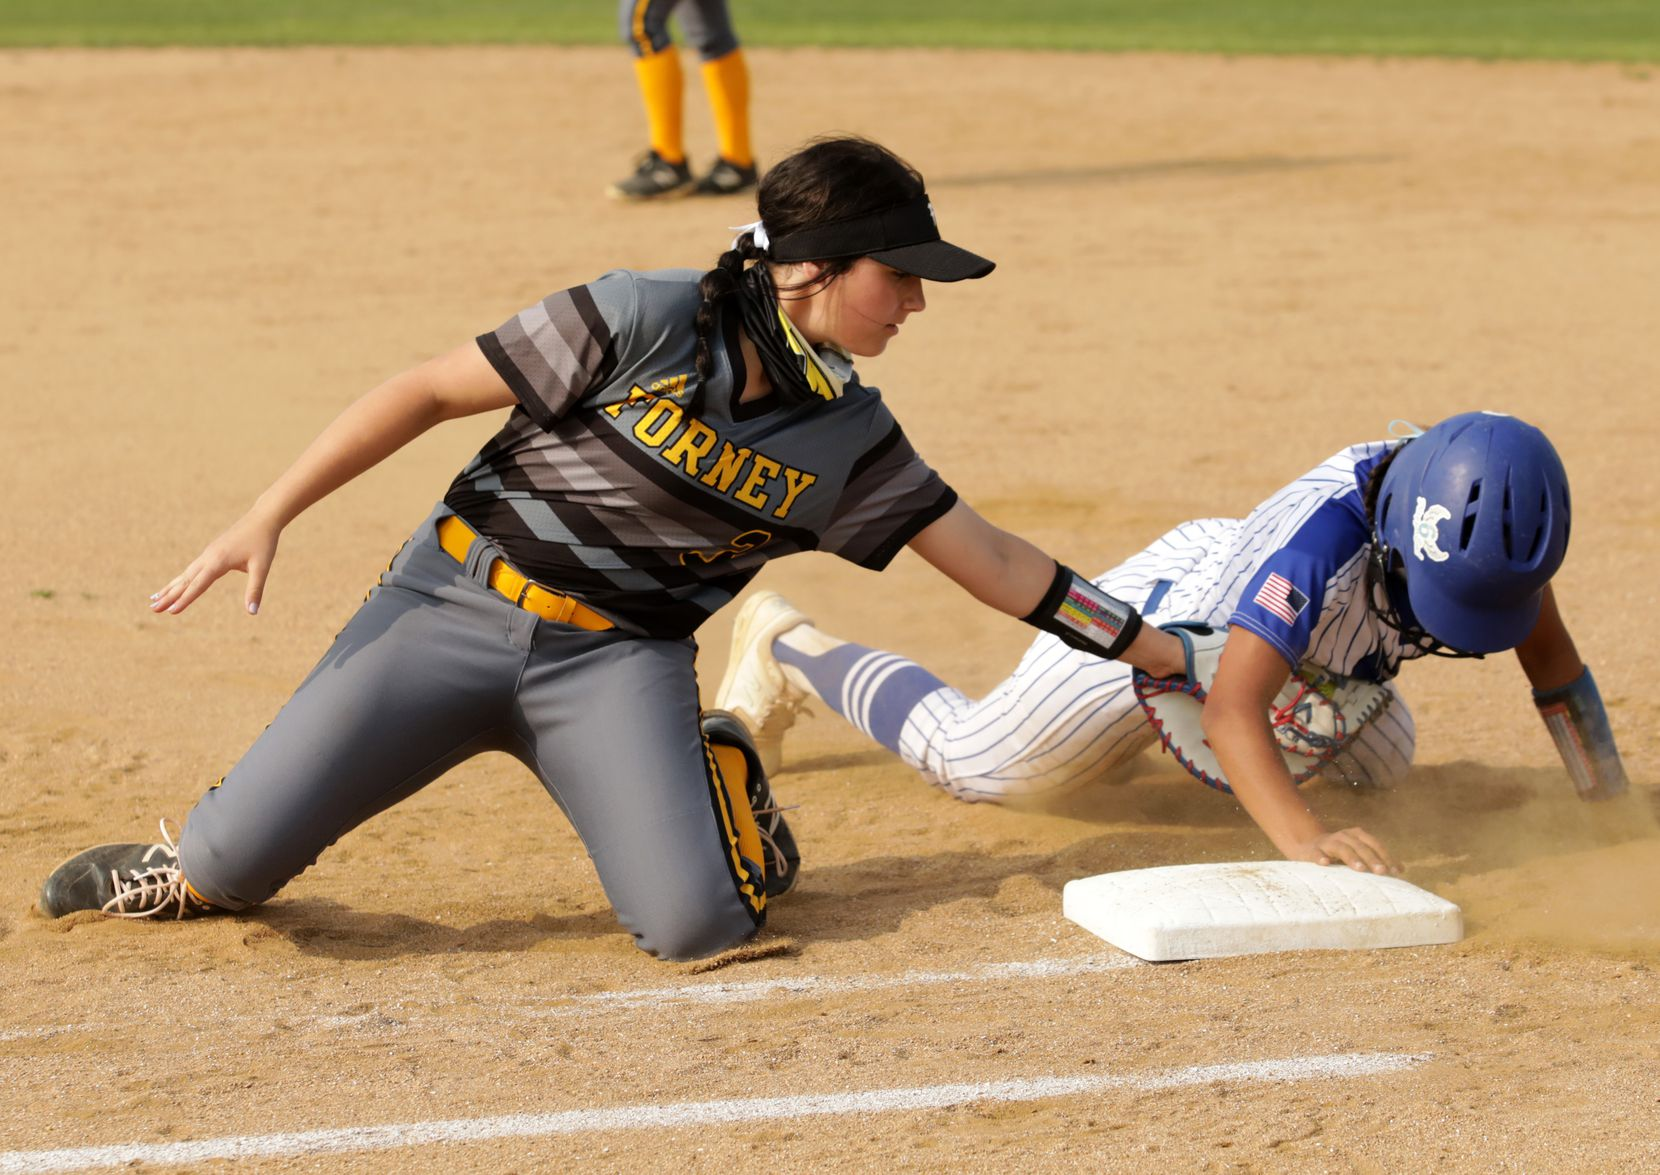 Rylie Harris attempts to stop Hayelie Acosta from returning to first base during a softball game between Forney at North Forney at North Forney High School in Forney, TX, on Apr. 9, 2021. (Jason Janik/Special Contributor)